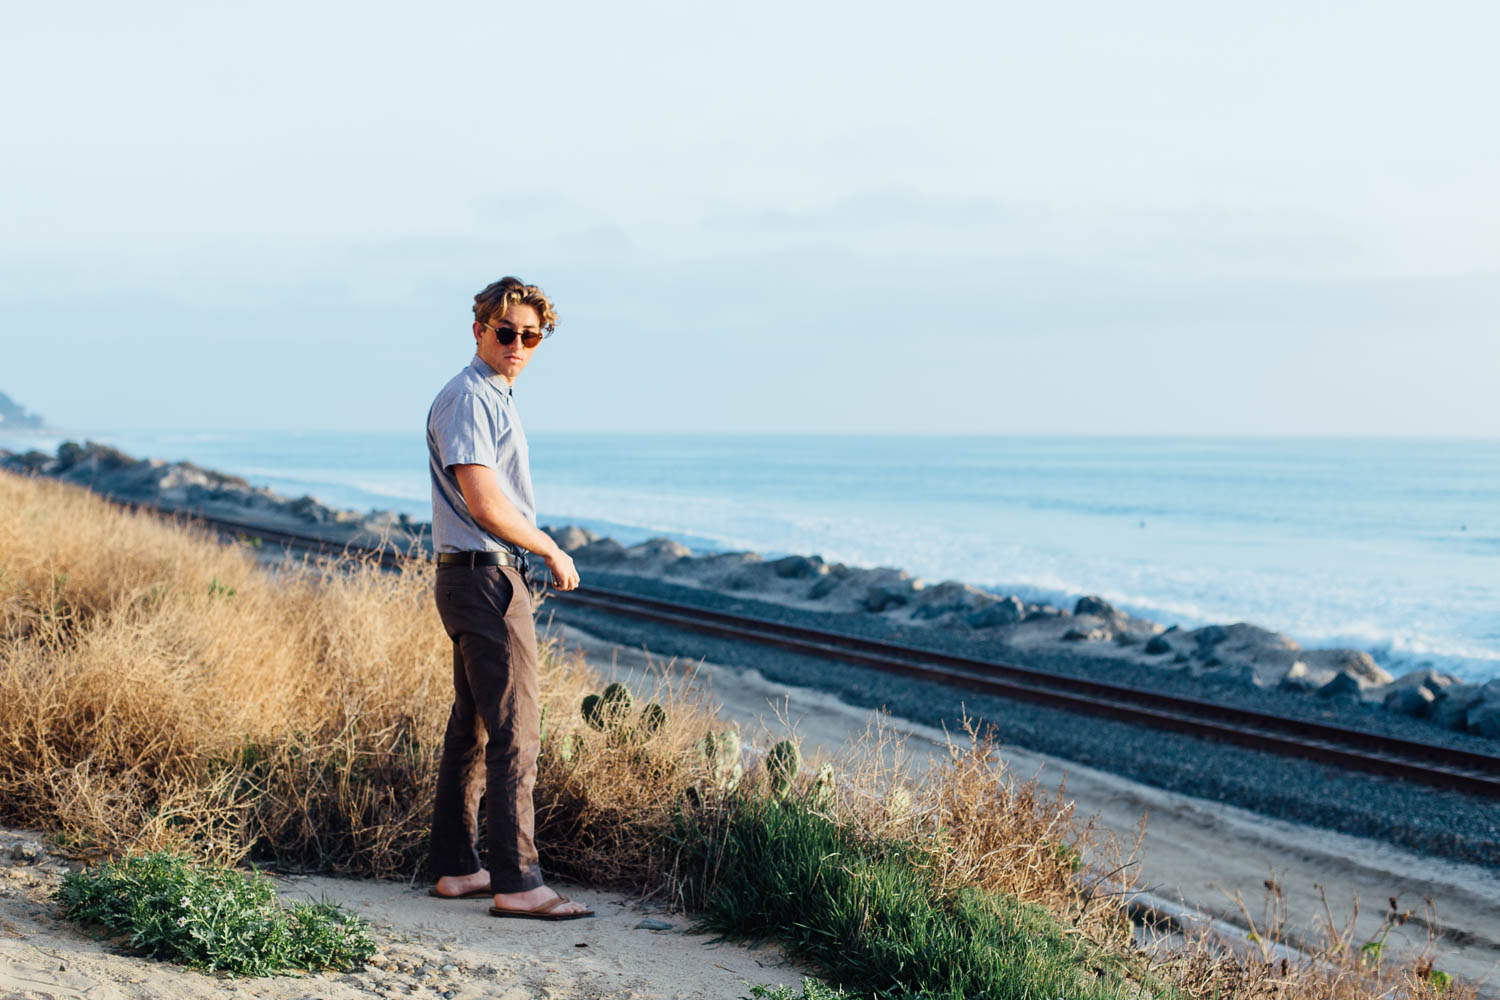 san_clemente_senior_portrait_photographer (1 of 7).jpg